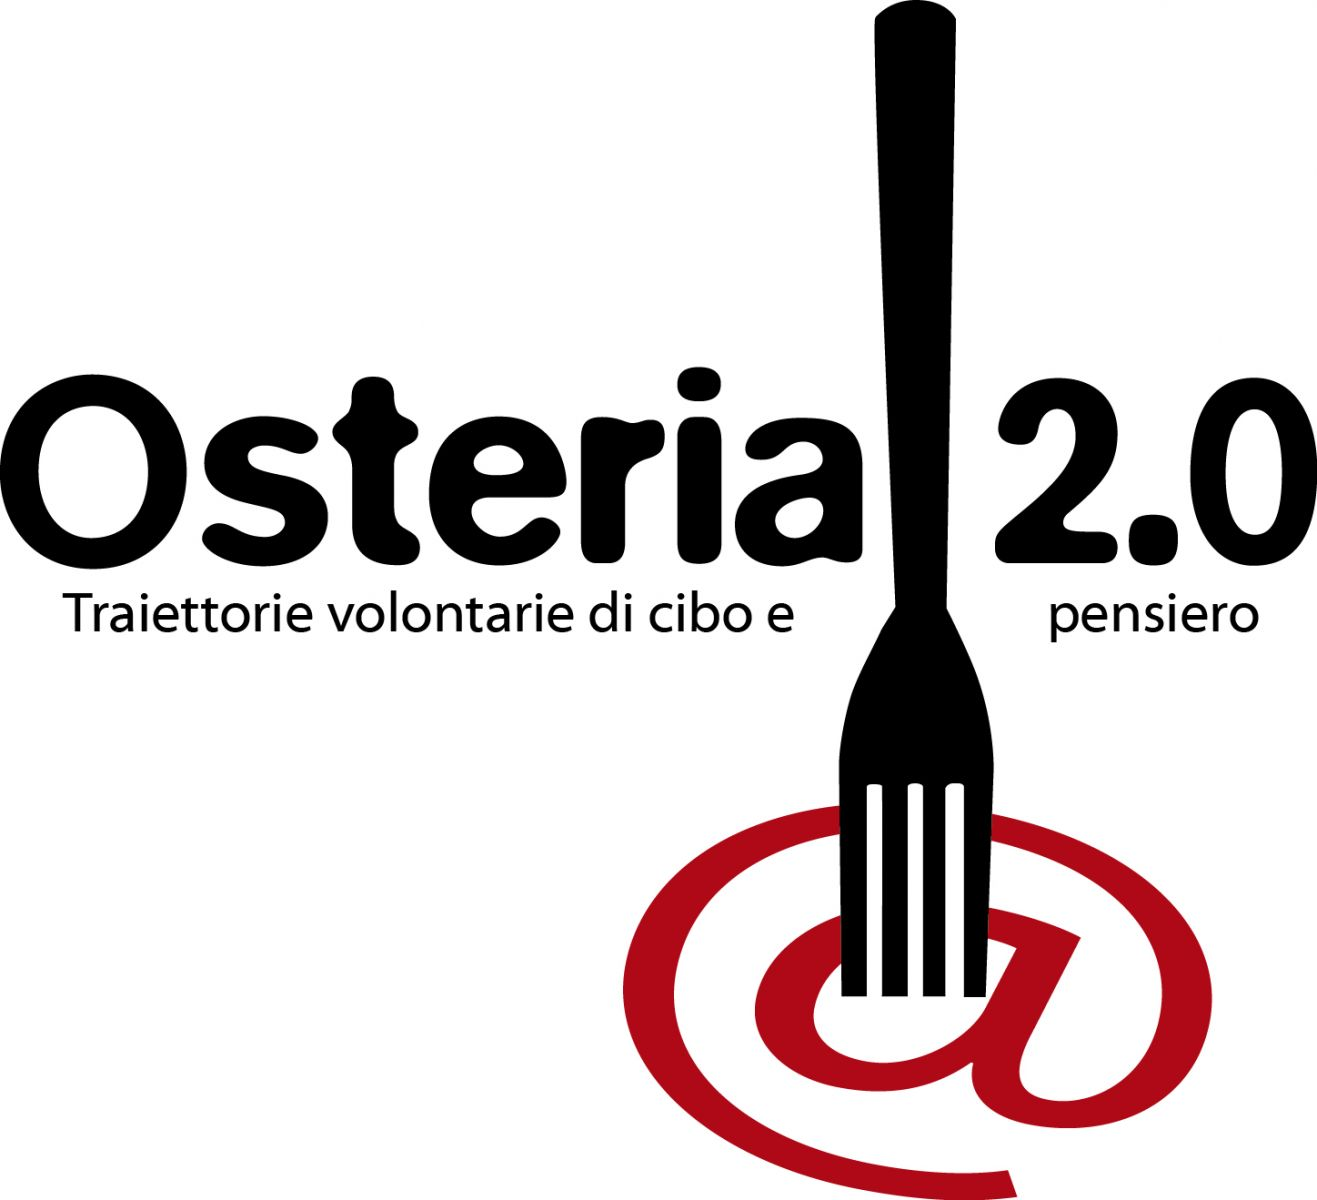 LAUTUNNO DI OSTERIA 2.0